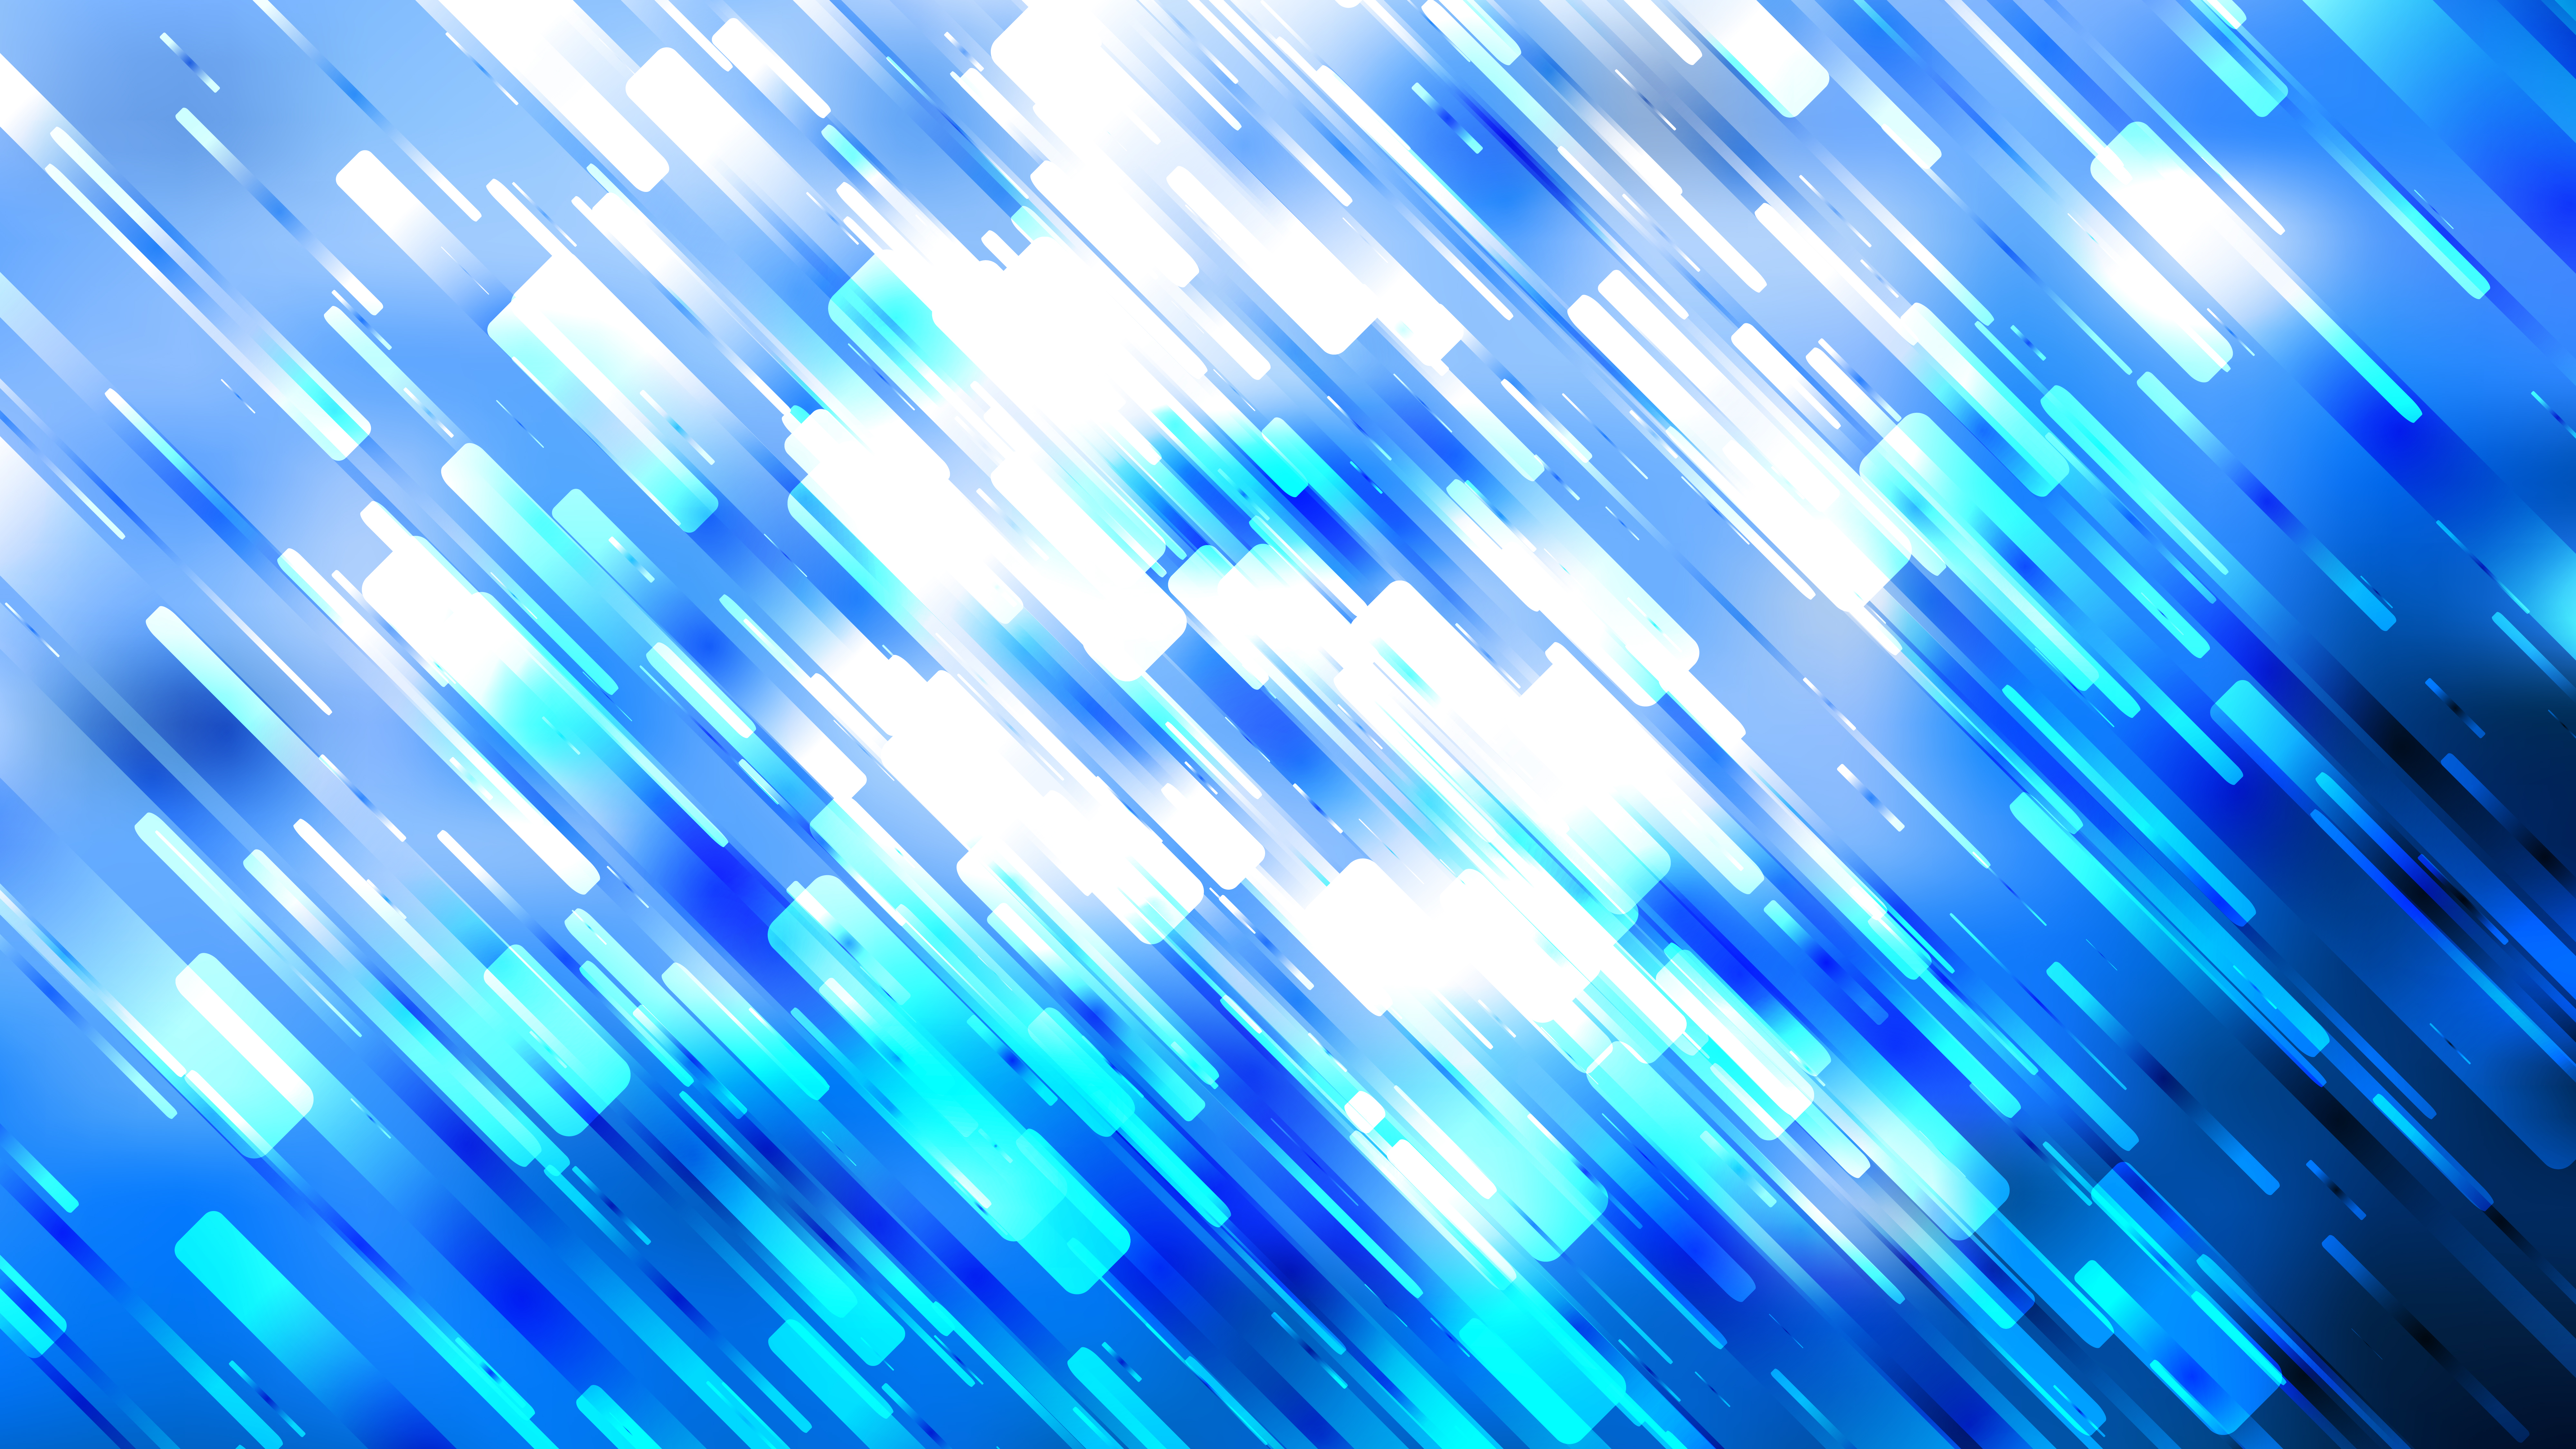 Abstract Blue and White Random Diagonal Lines Background 8000x4500